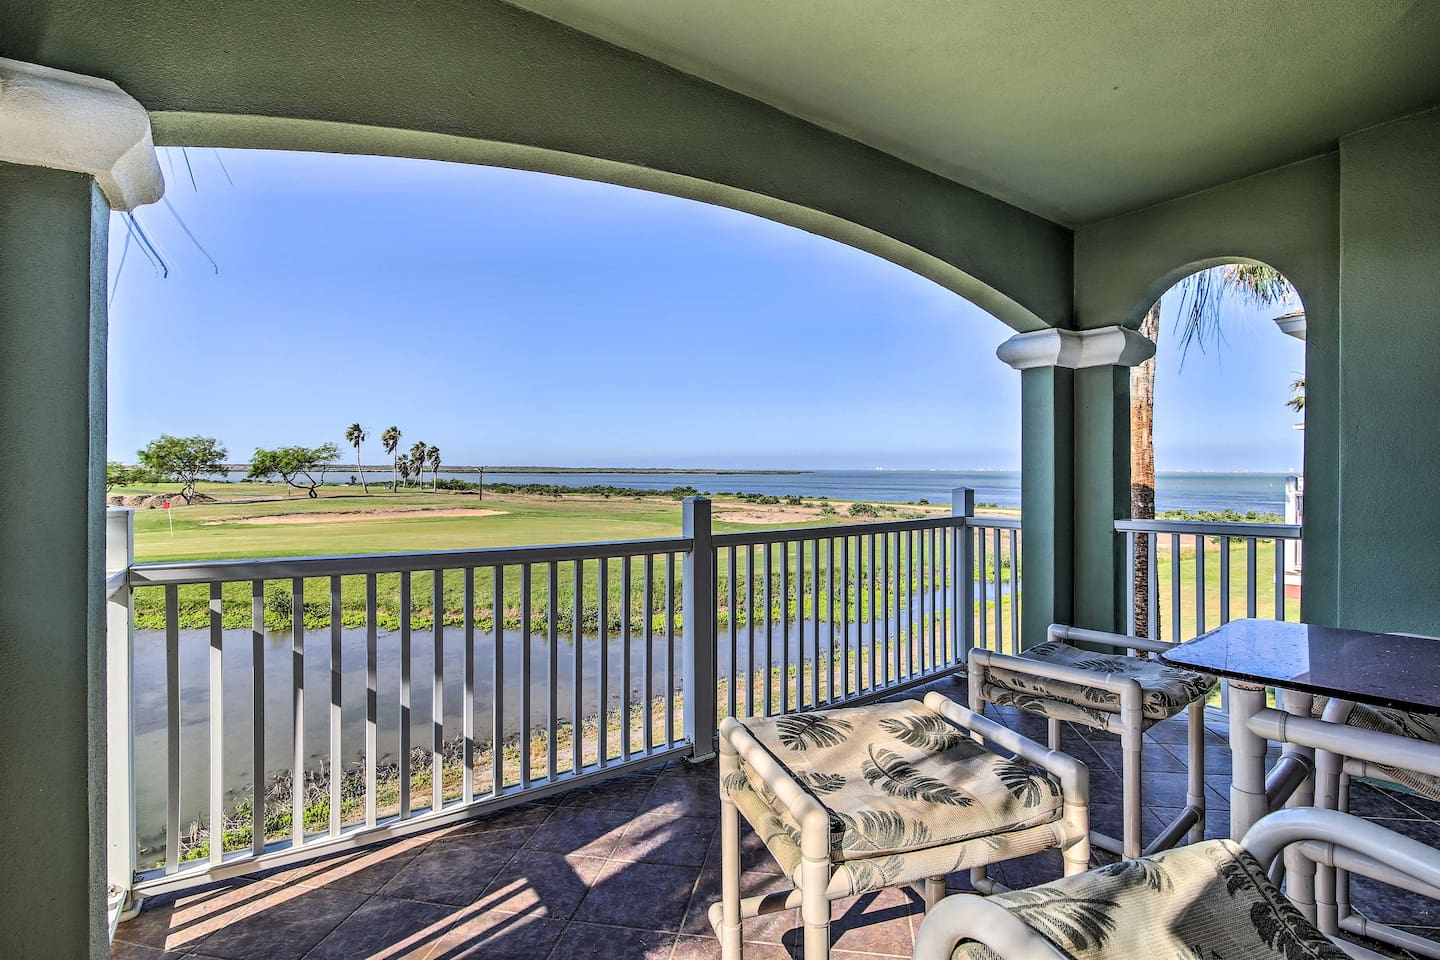 Let your worries melt away at this luxurious vacation rental townhome!